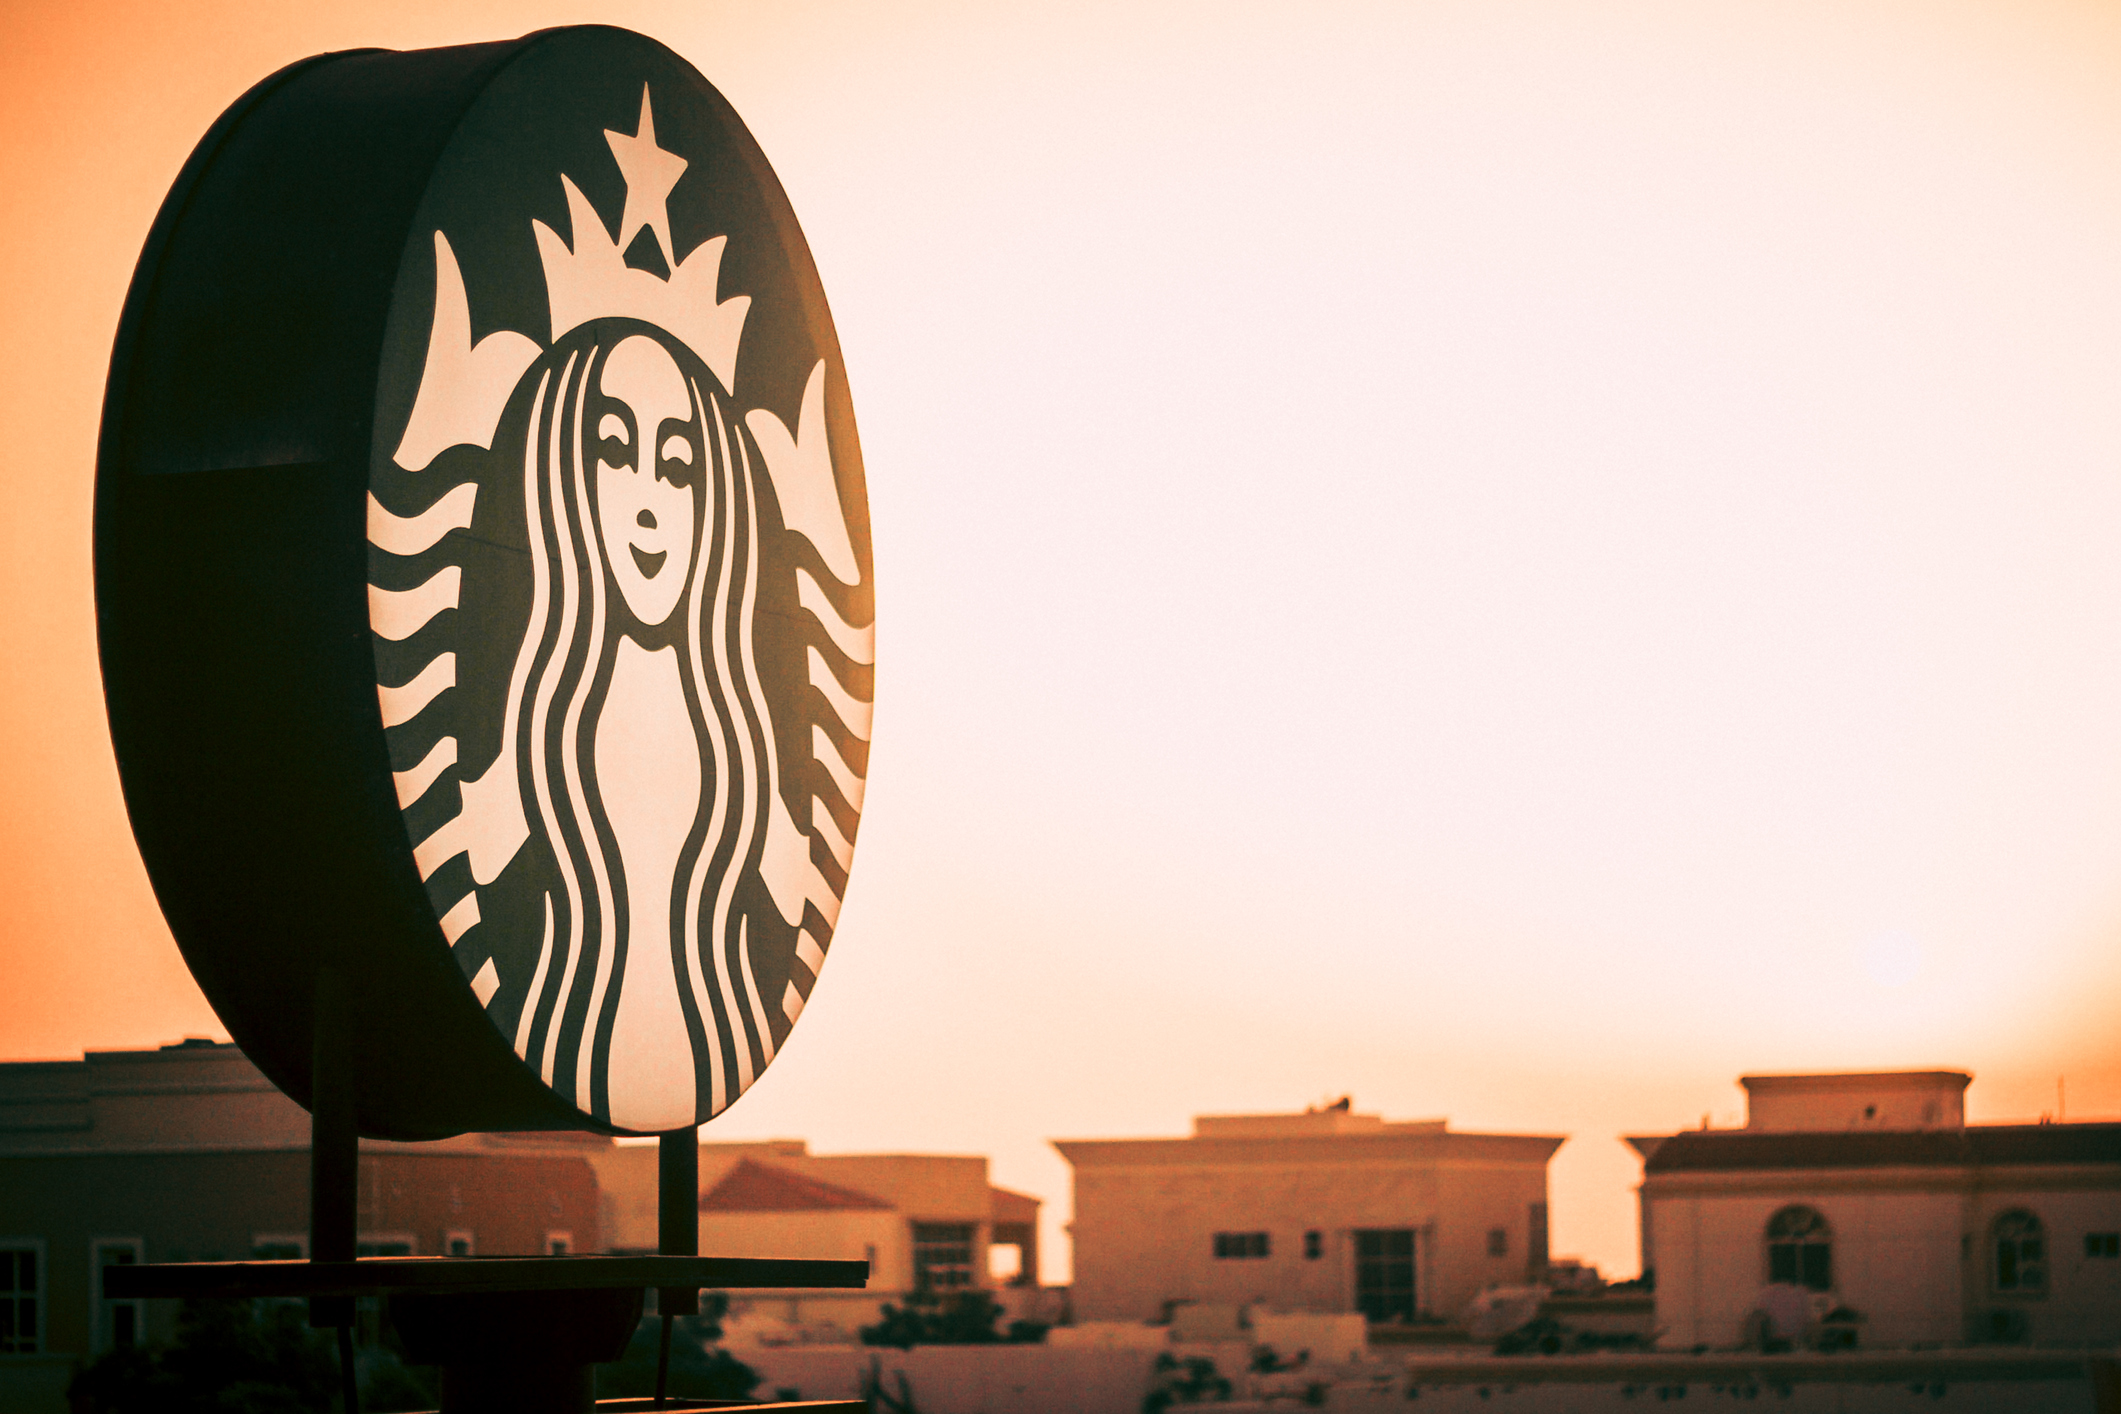 Sunset behind a giant starbucks sign to represent the stores closing for unconscious-bias training